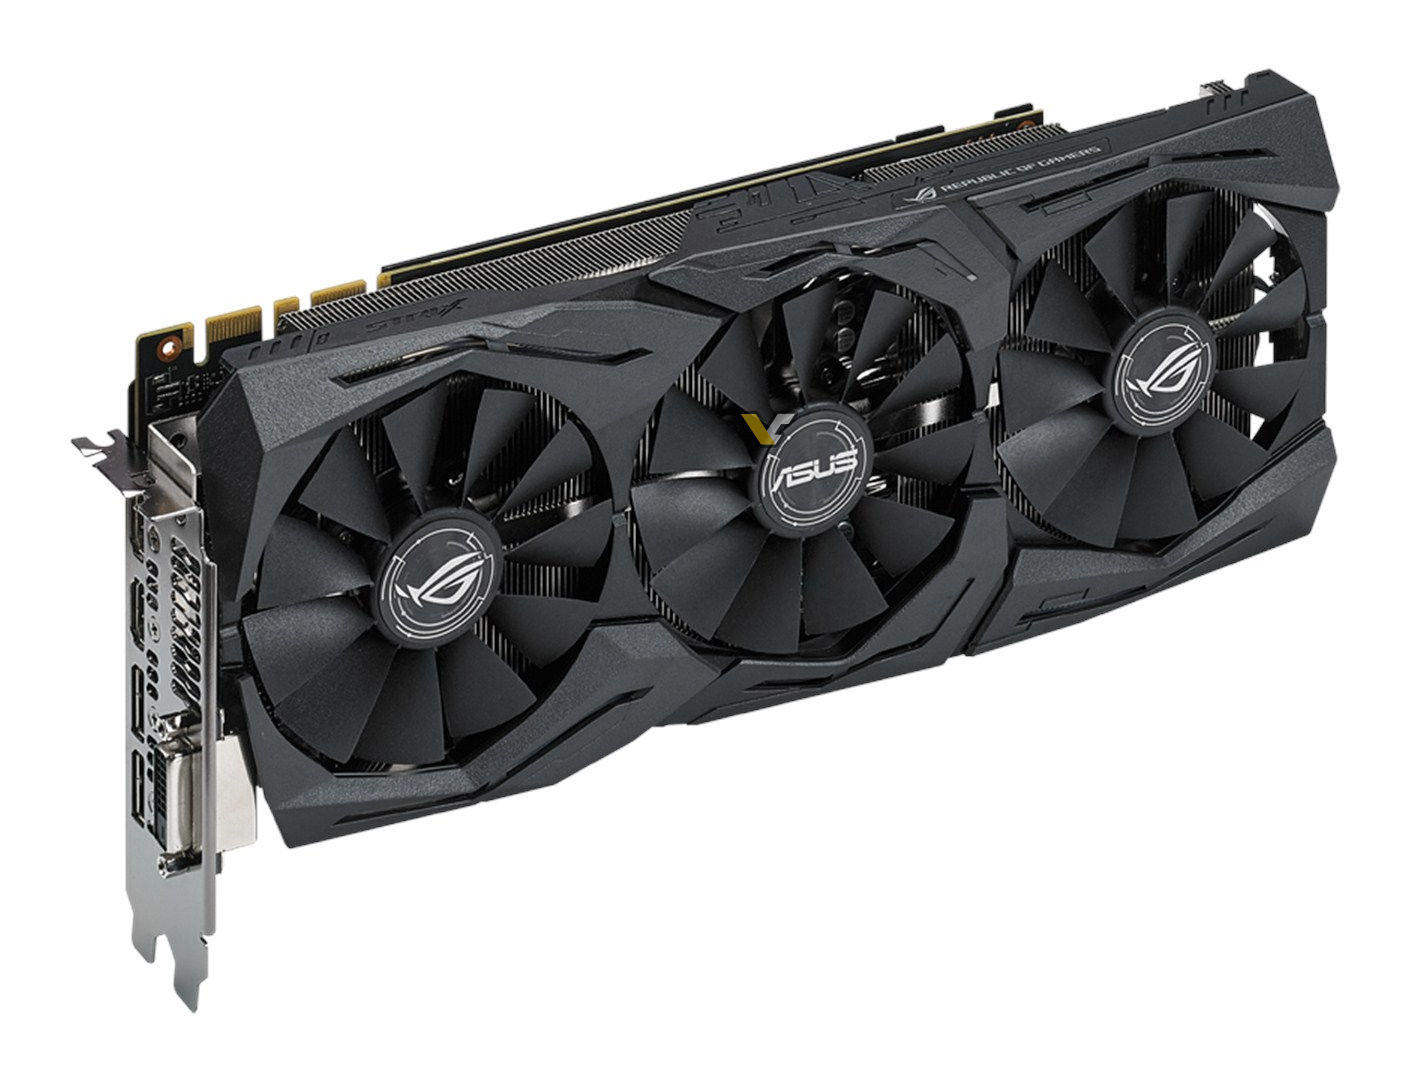 Image result for strix gtx 1070